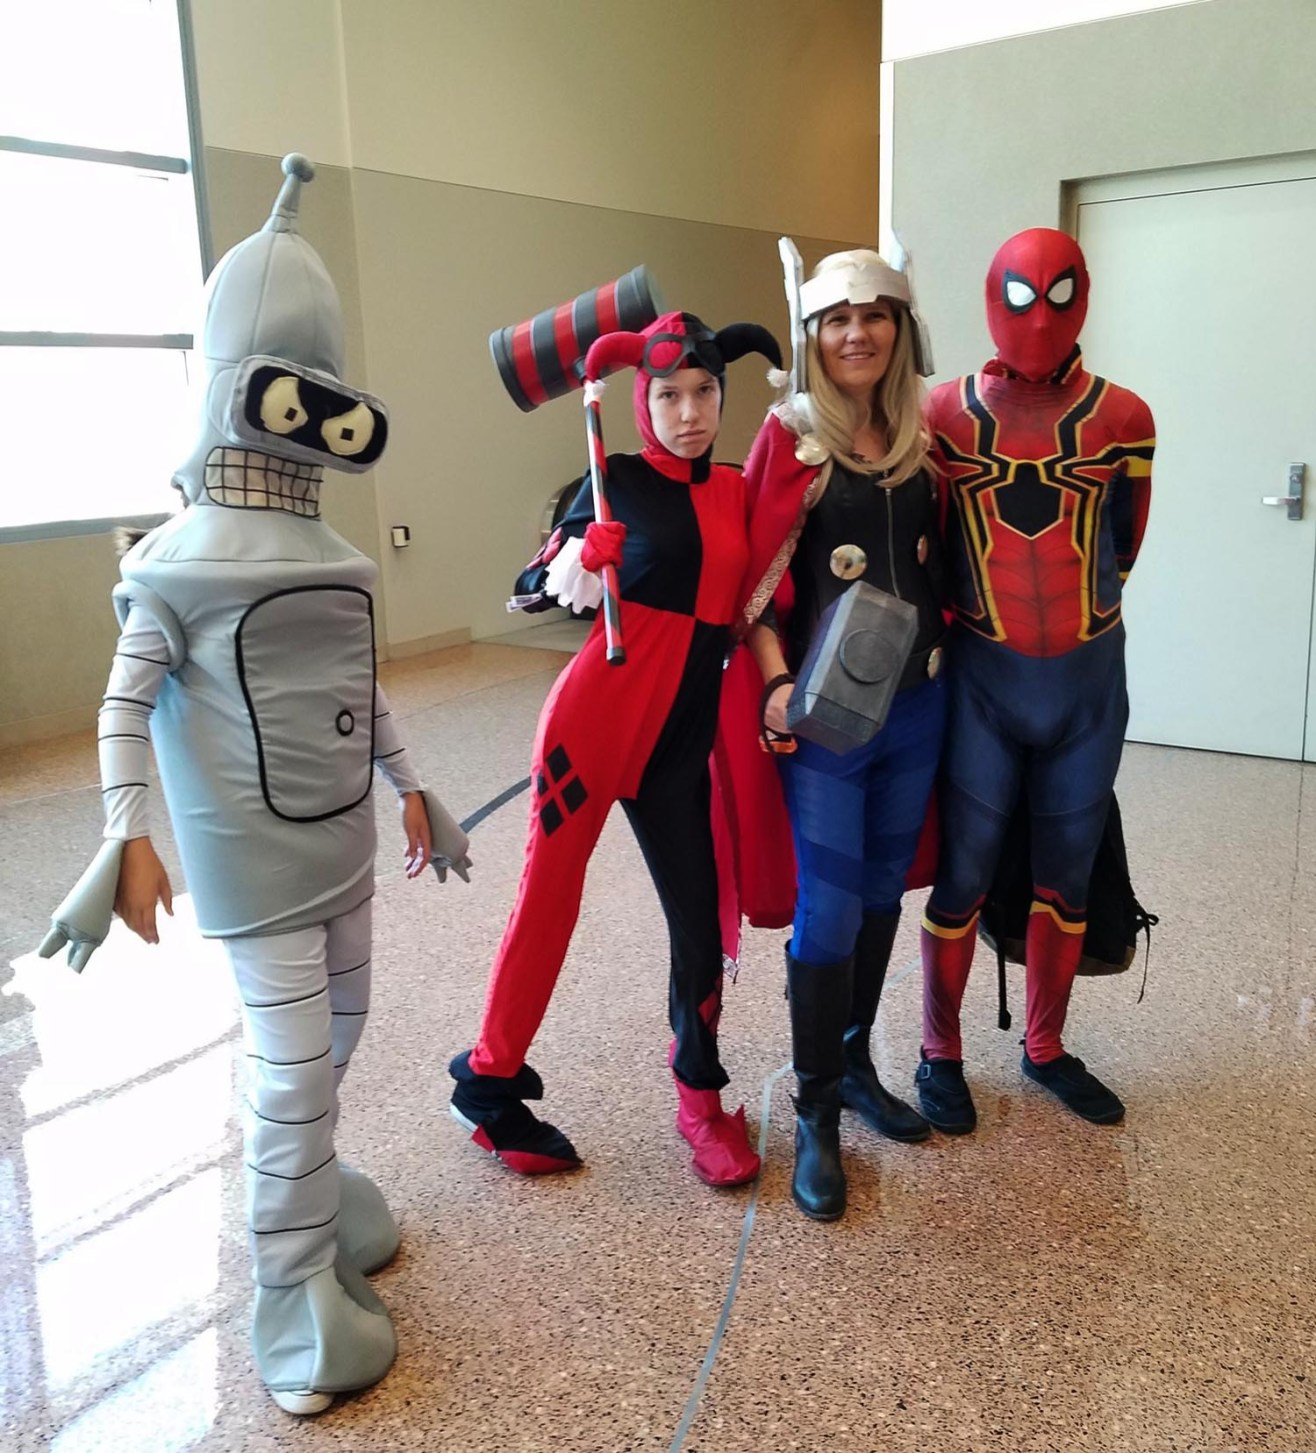 A family that cos-plays together, stays together at Phoenix Comic Fest, Friday, May 25, 2018, at the Phoenix Convention Center.